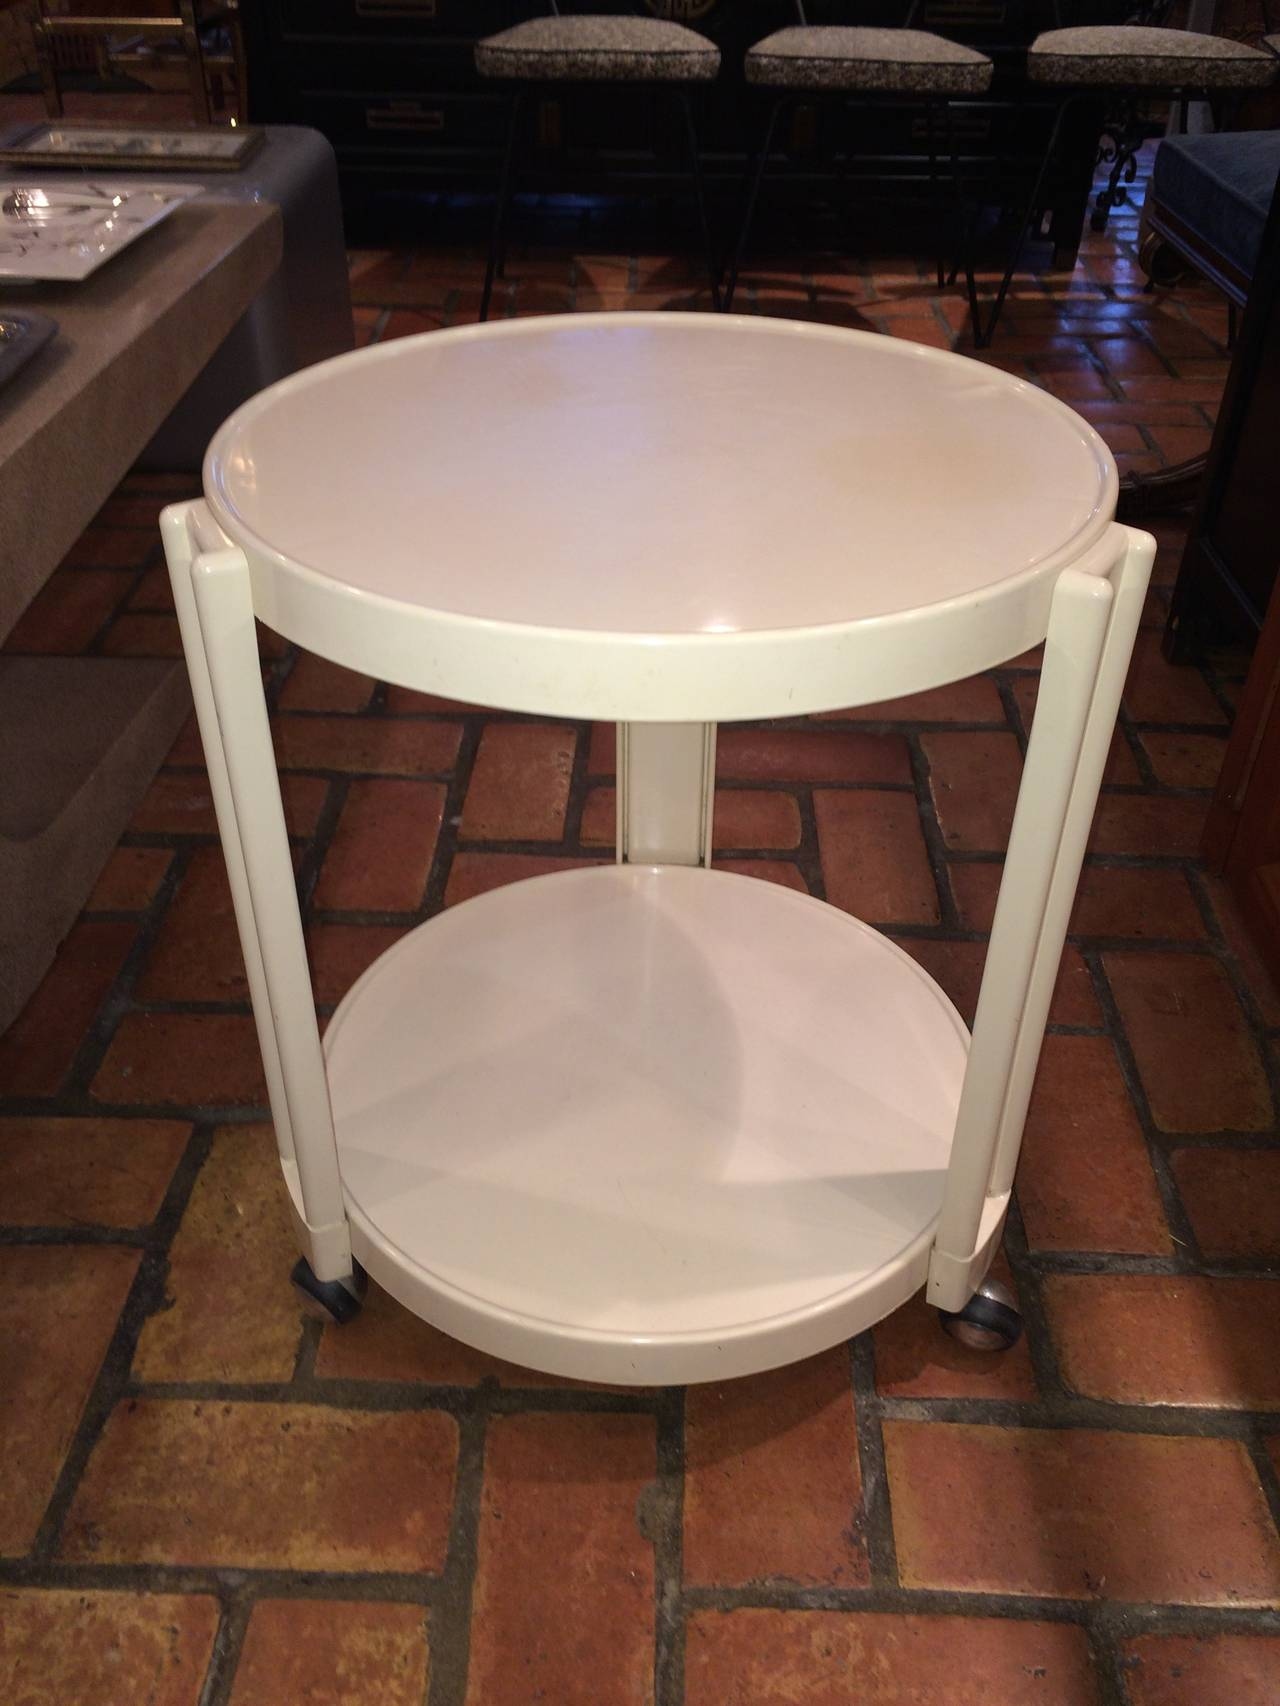 Perfect Giotto Stoppino For Kartell Round Bar Cart/ Table On Wheels. Creme Acrylic.  A